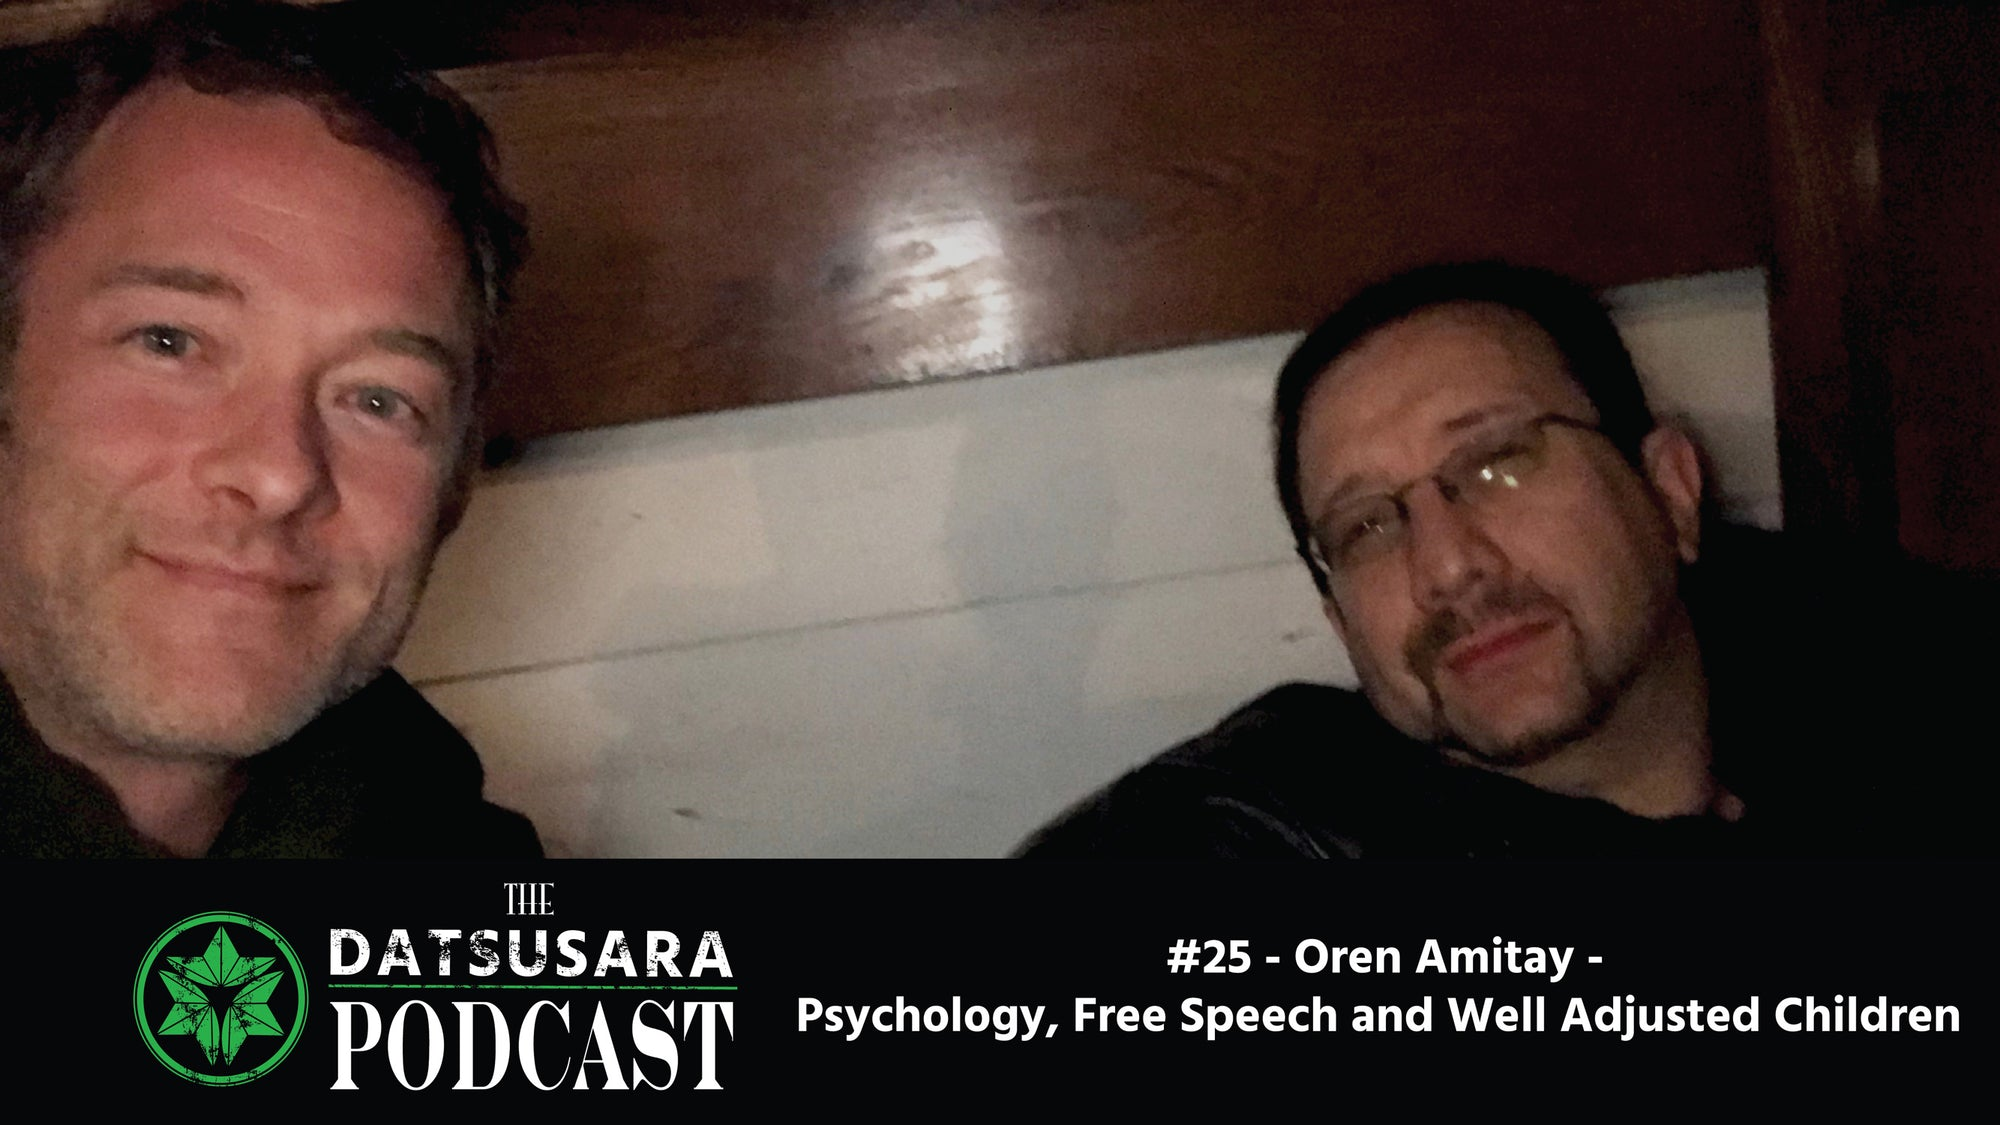 #25 - Oren Amitay - Psychology, Free Speech and Well Adjusted Children